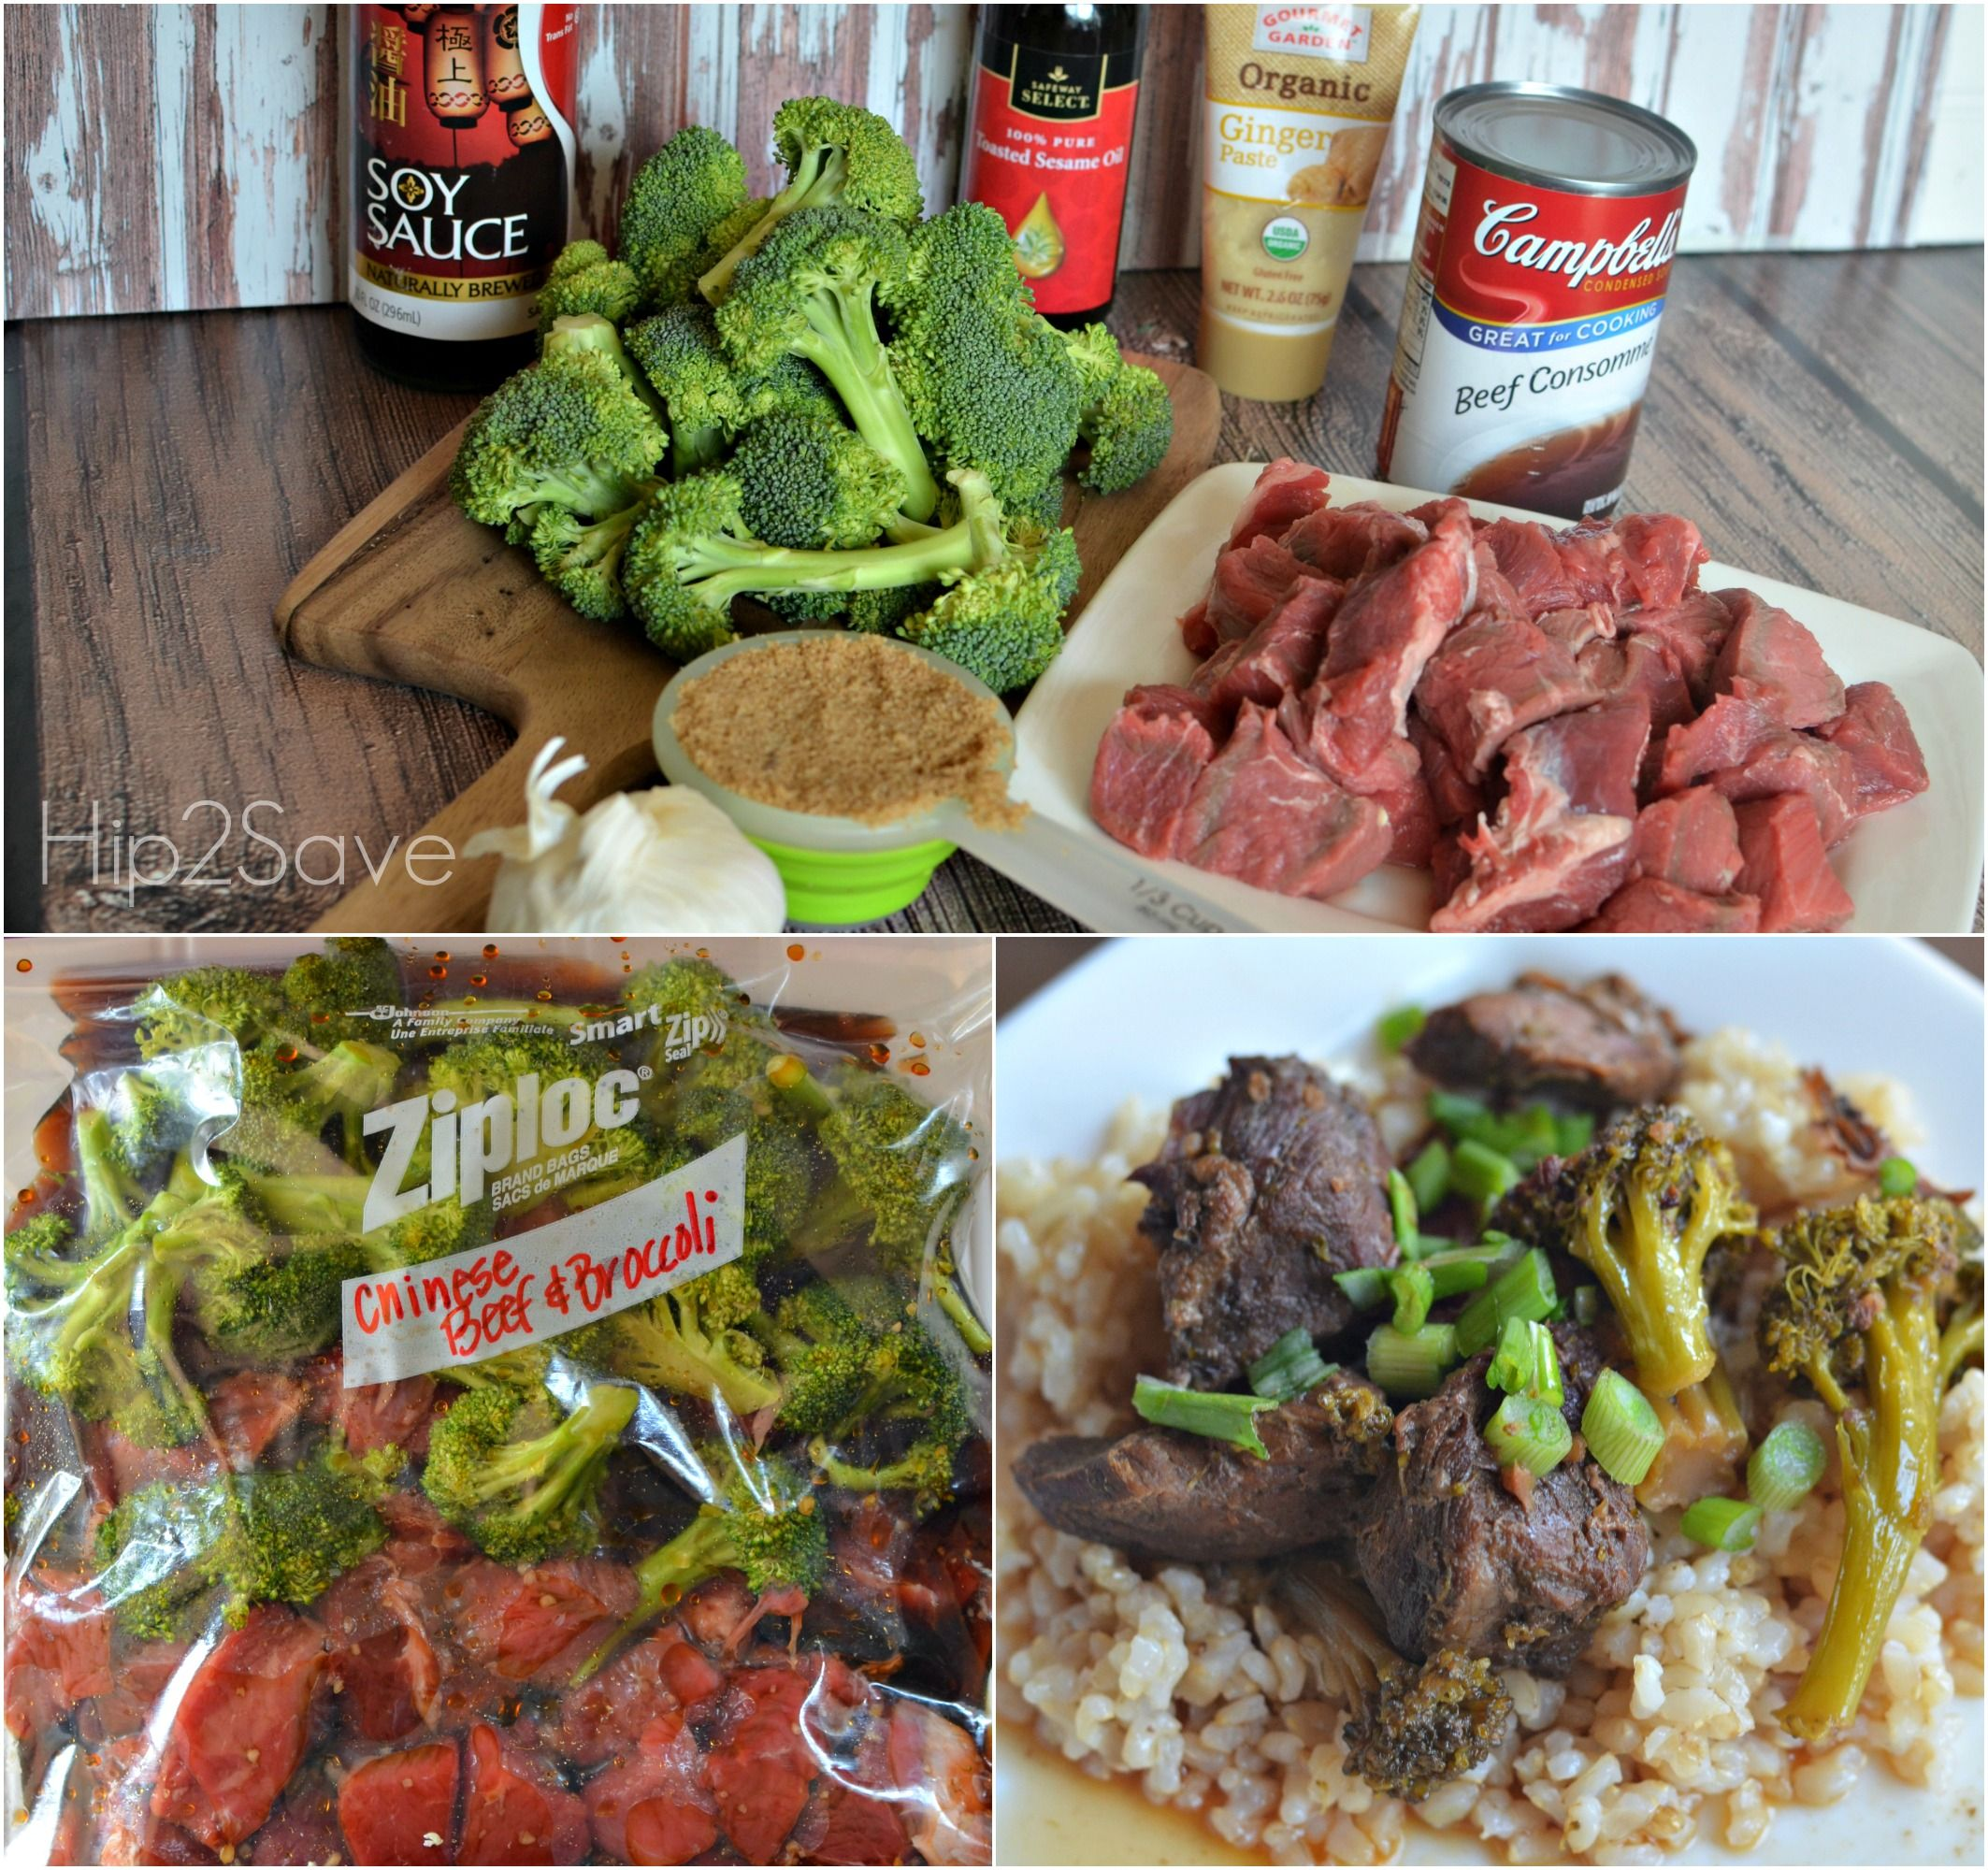 5 Slow Cooker Freezer Bag Meals Including Chinese Beef Broccoli Creamy Italian En Sausage With Peppers Onions Cilantro Lime